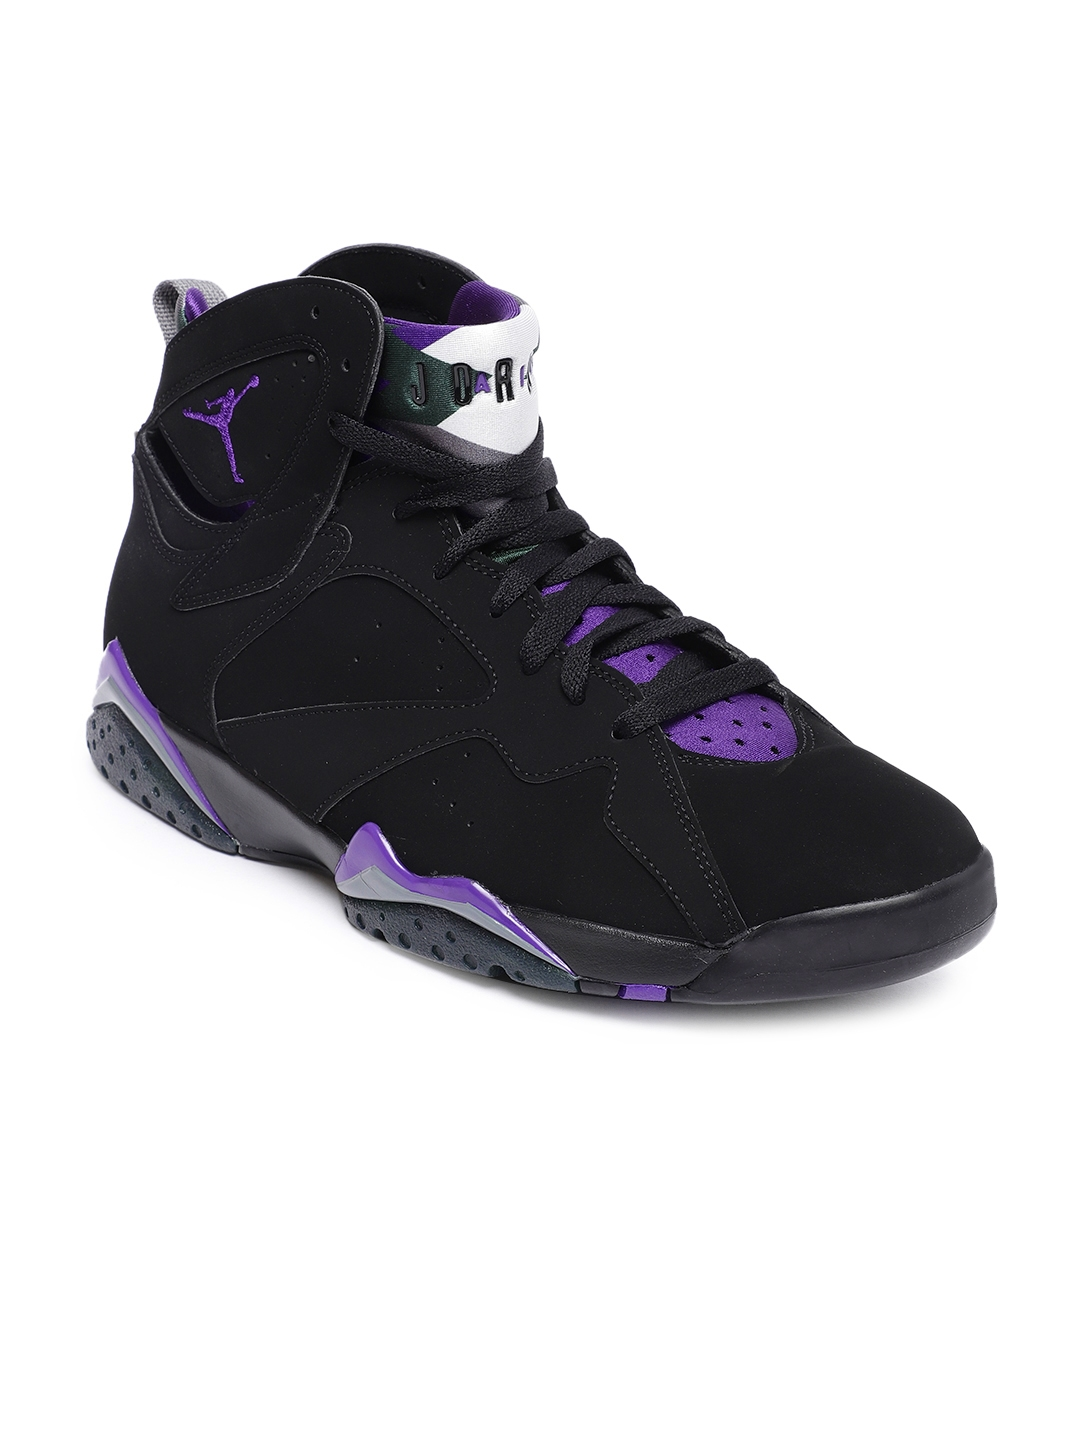 reputable site 91c02 54131 Nike Men Black   Purple AIR JORDAN 7 RETRO Mid-Top Basketball Shoes